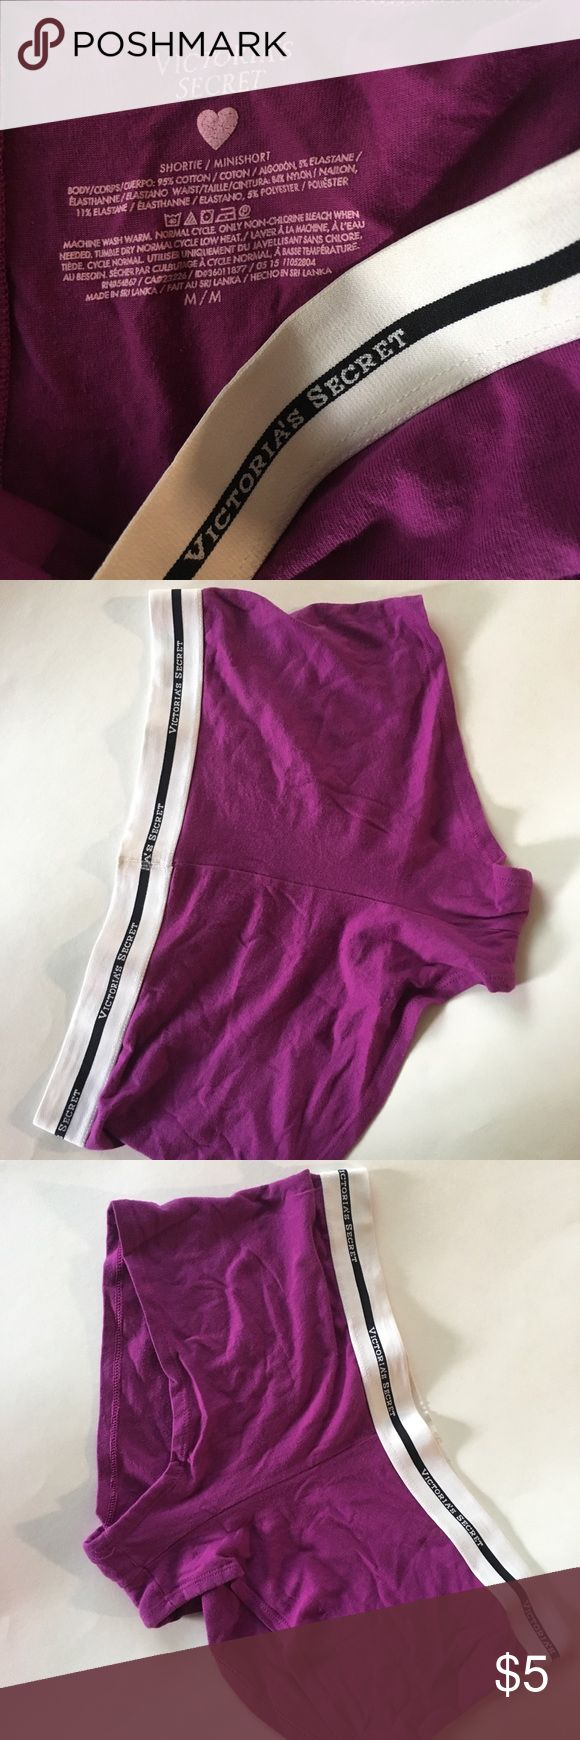 Victoria Secret Boxer undies Super cute Boxer Undies. I bought these in Canada because I didn't pack enough underwear for my trip. I used them once. In good condition! Size Medium Victoria's Secret Intimates & Sleepwear Panties